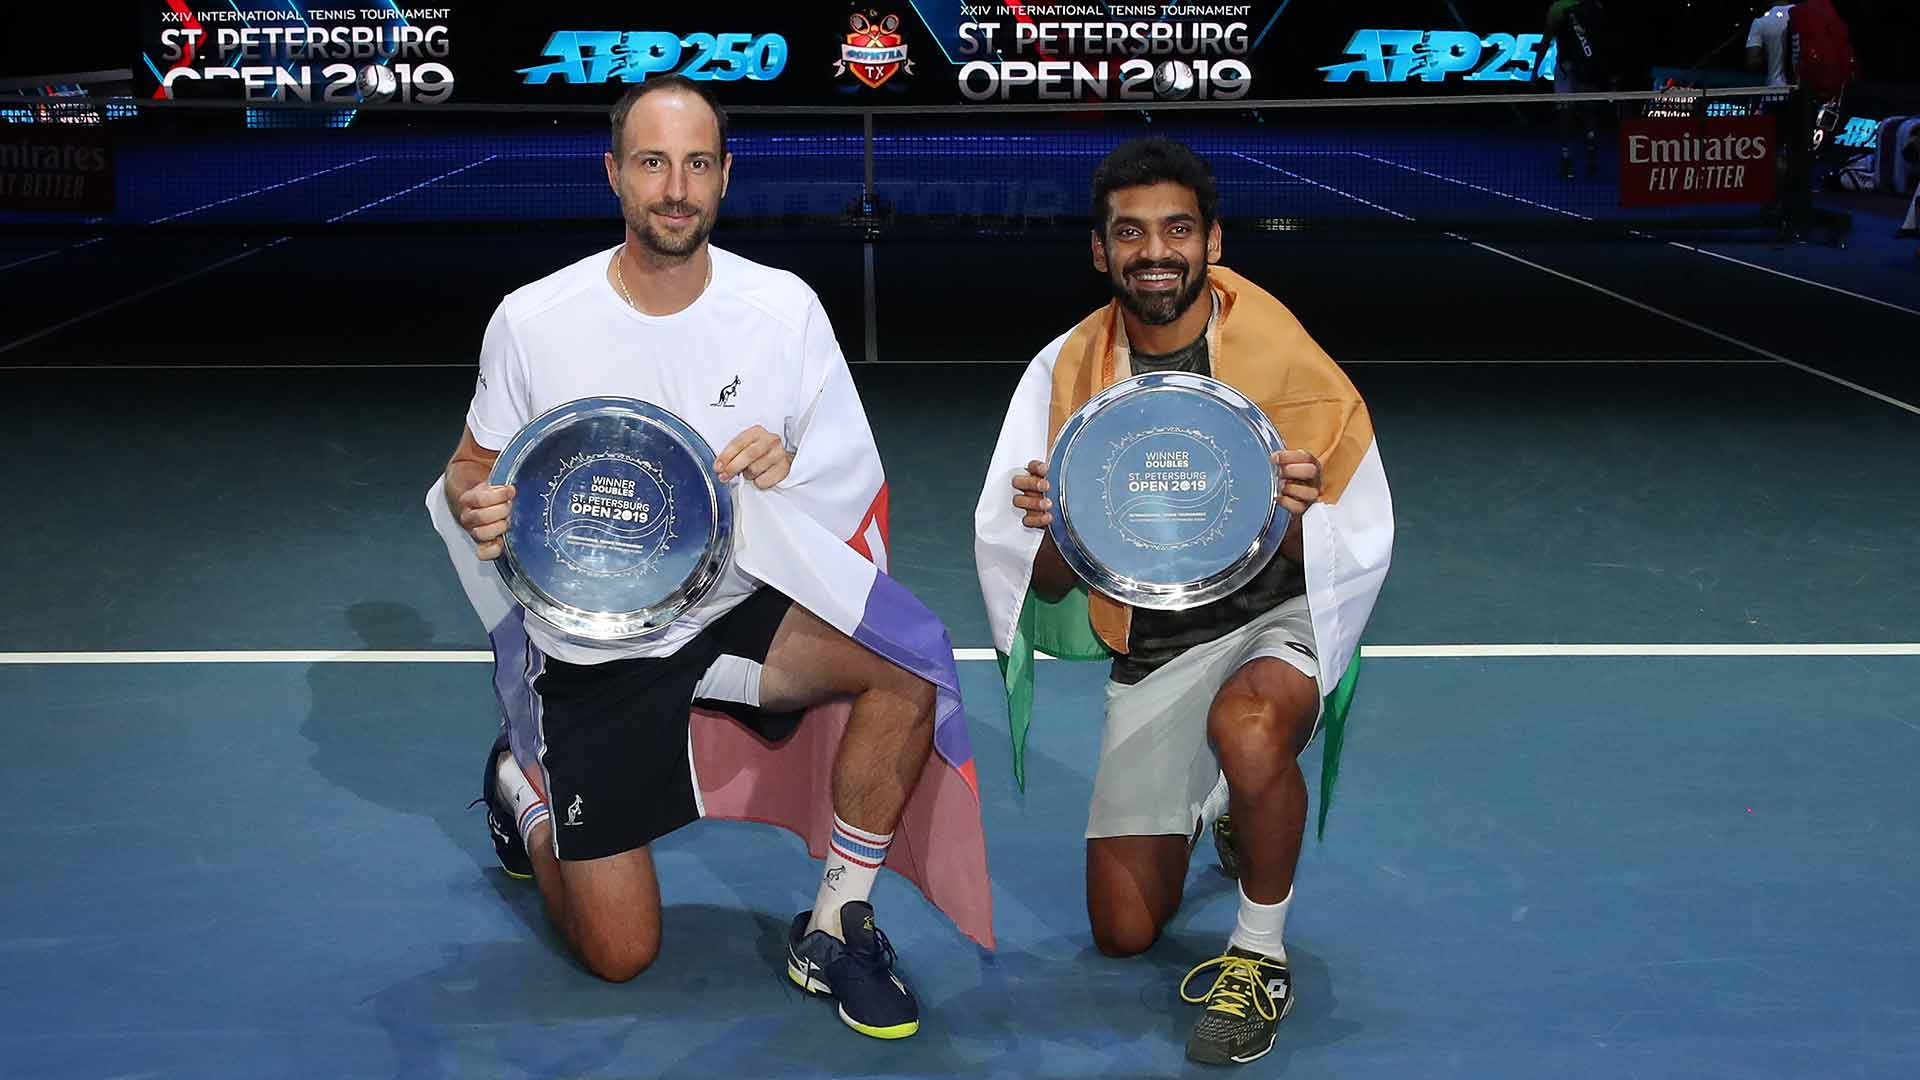 Zelenay/Sharan win the St. Petersburg Open doubles title on Sunday